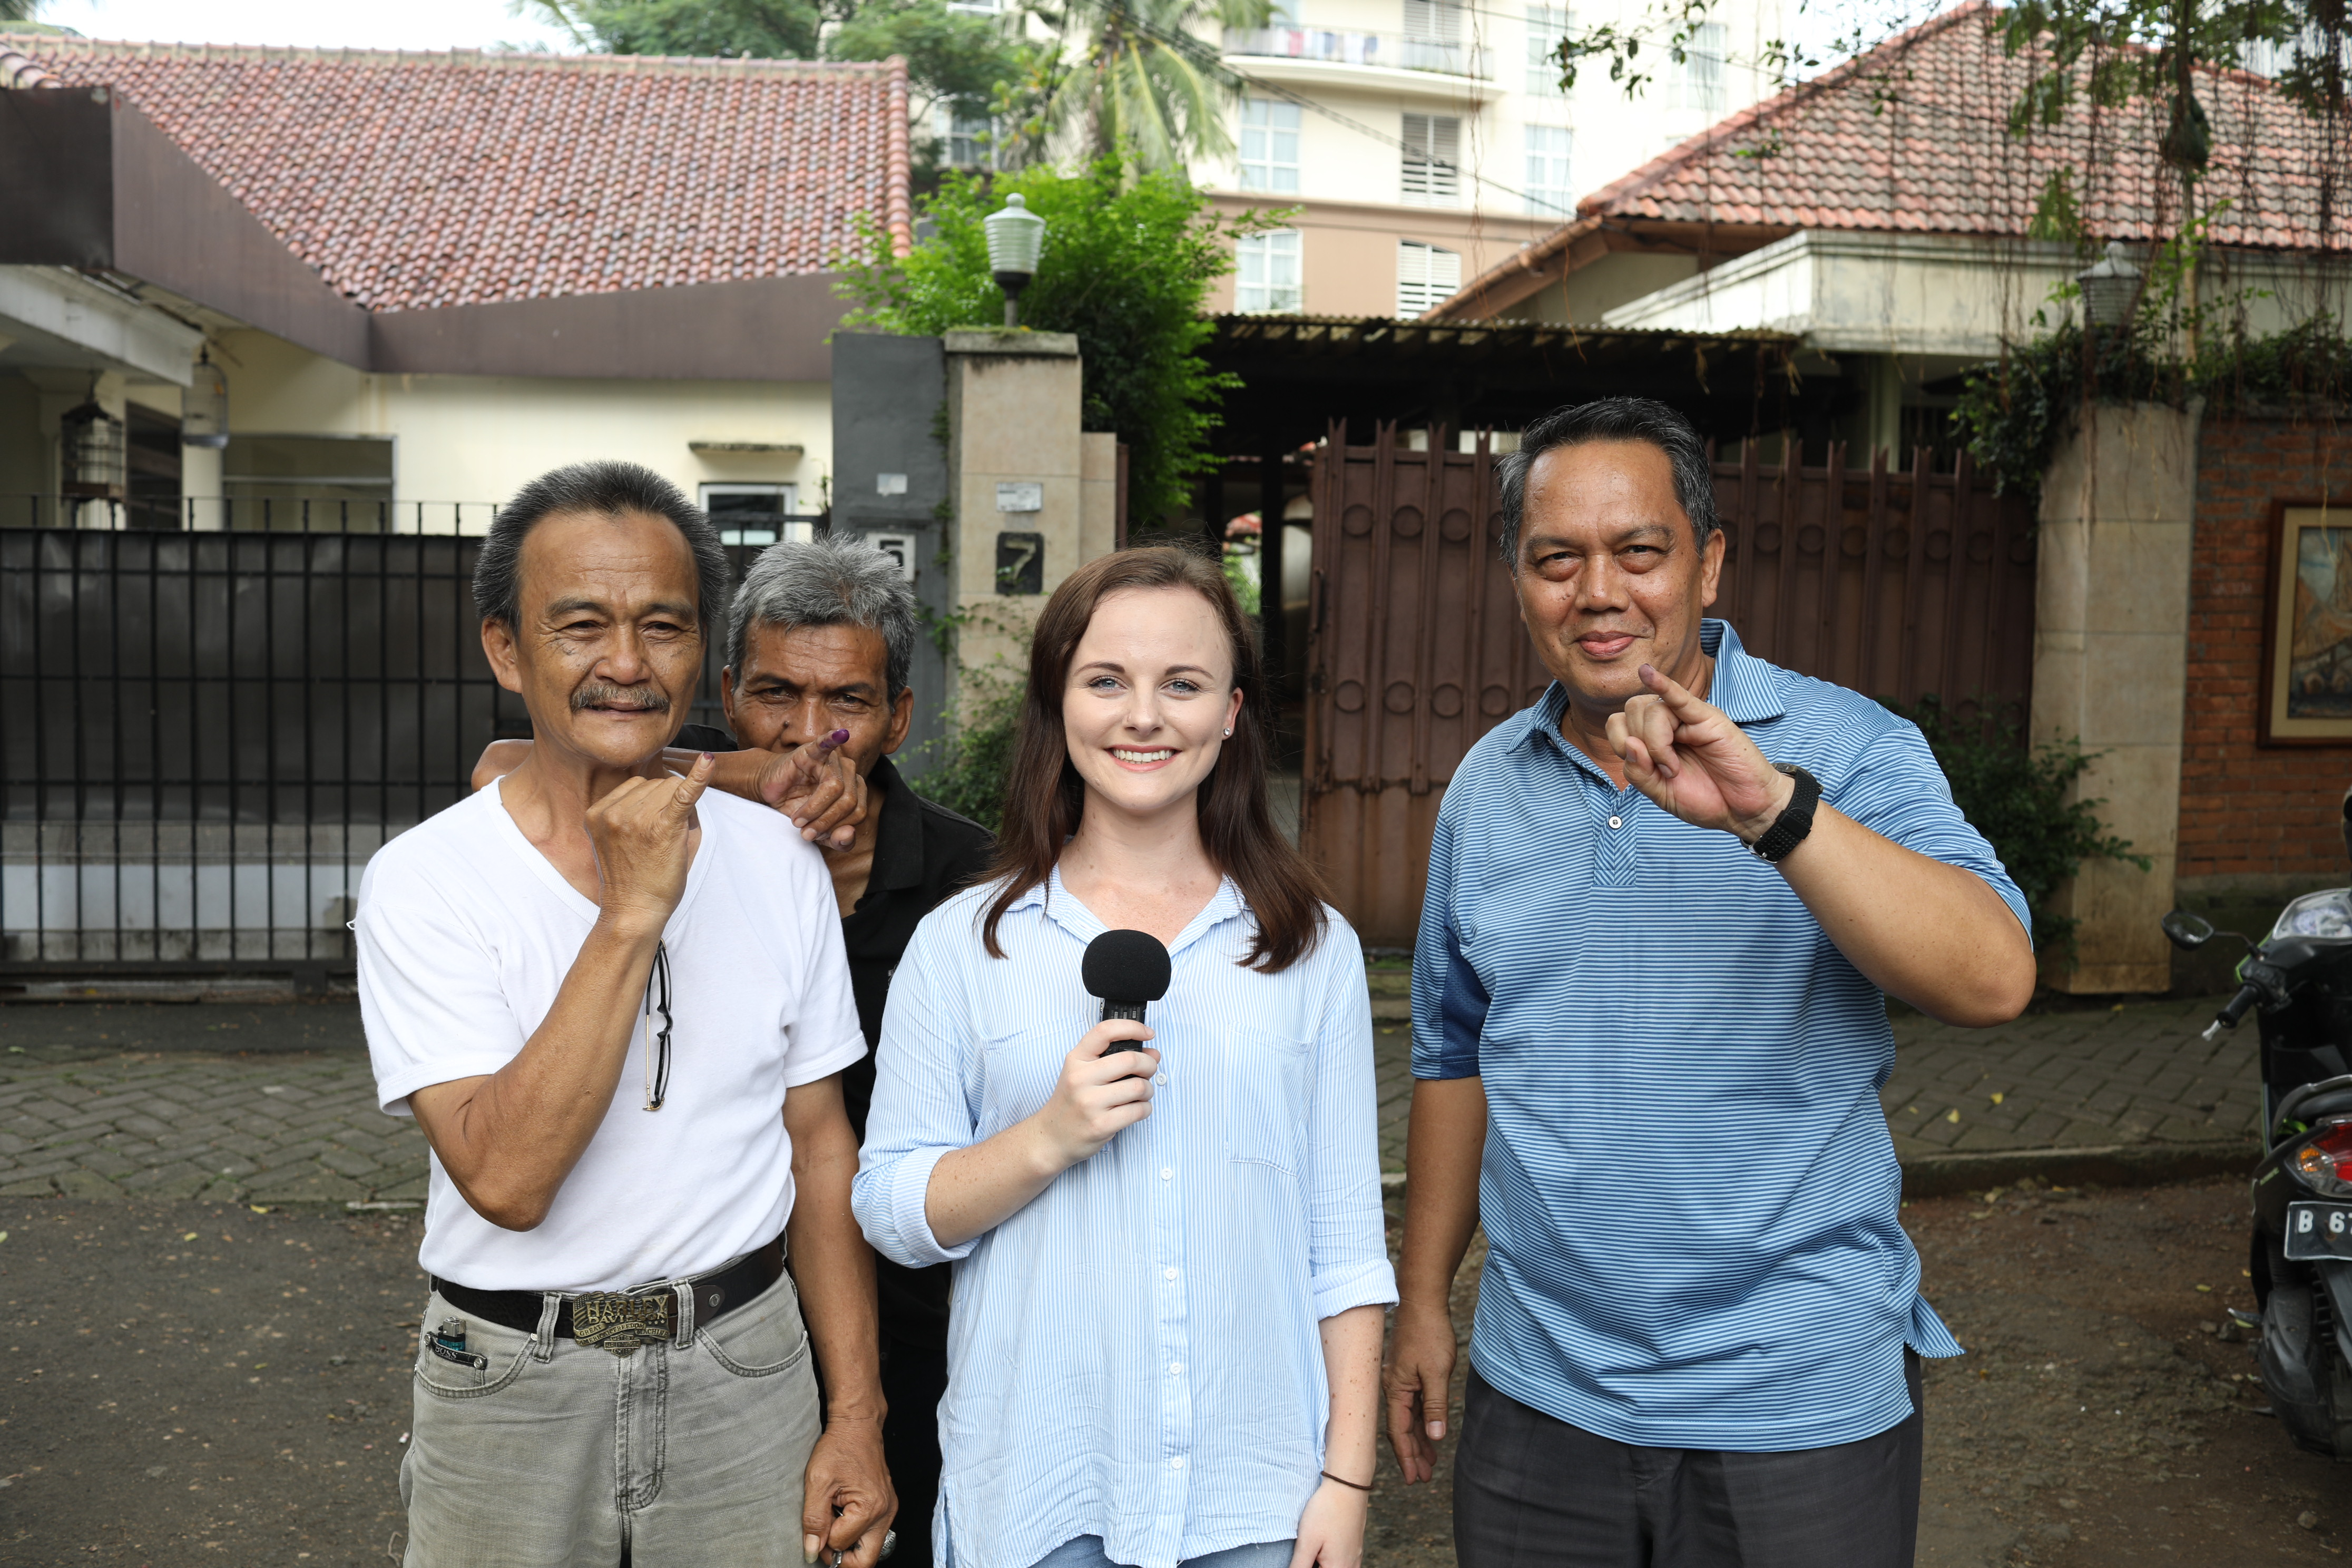 Sophie Volker reporting from a Jakarta polling place with locals keen to show off their freshly inked fingerprints.